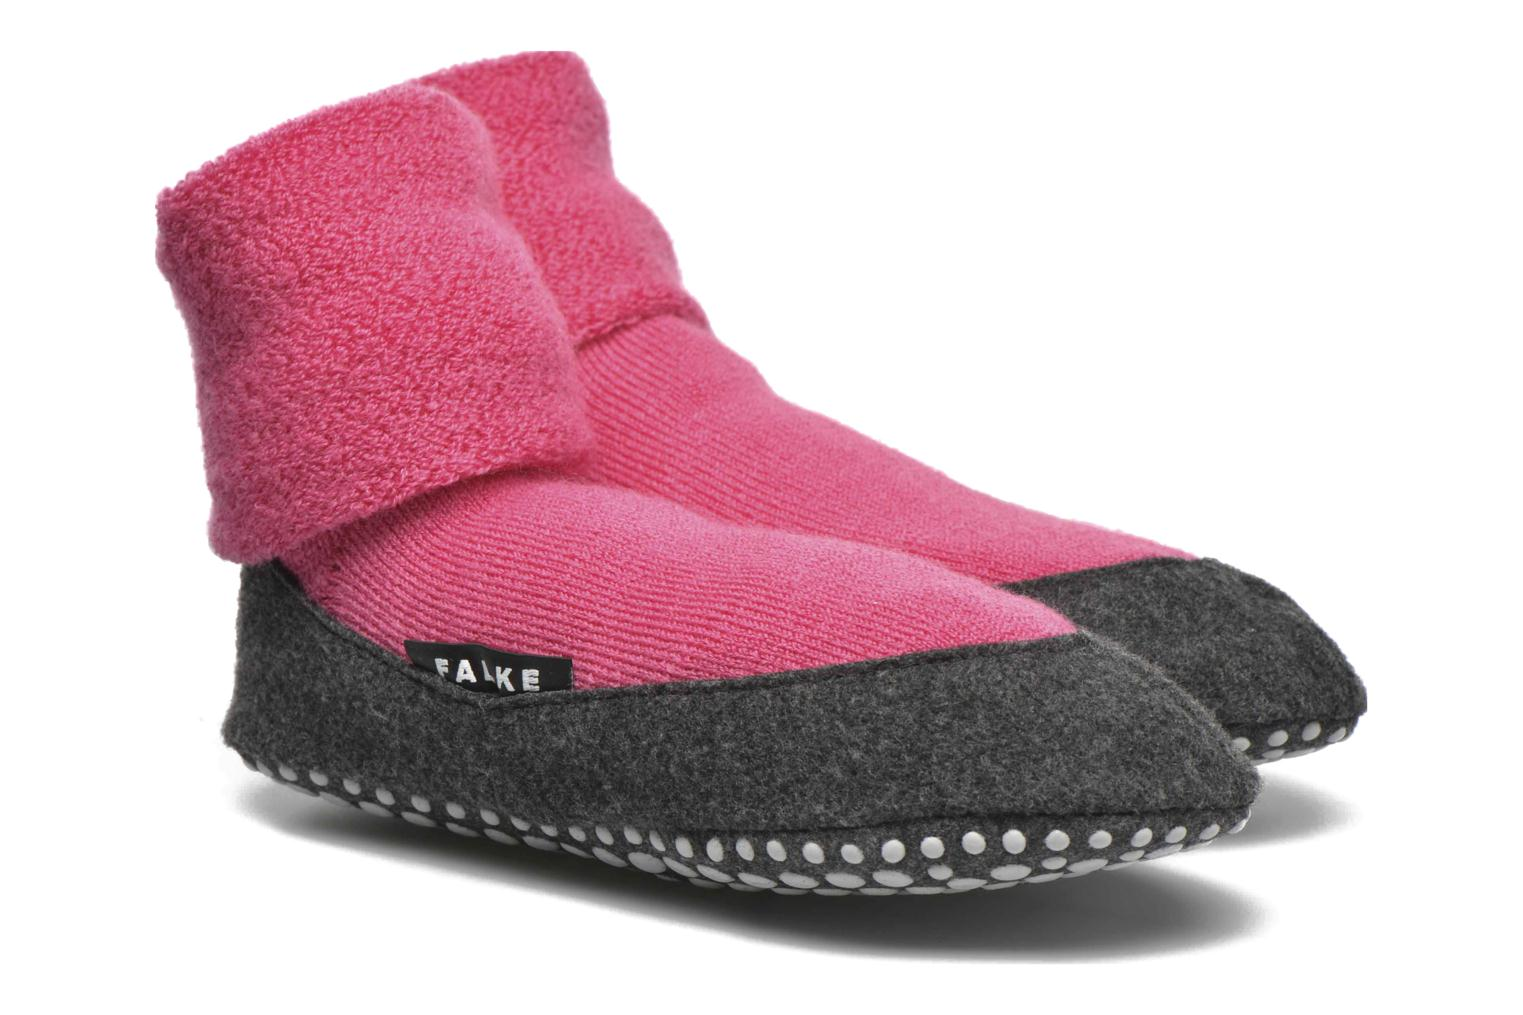 Chaussons-chaussettes Cosyshoes 8550